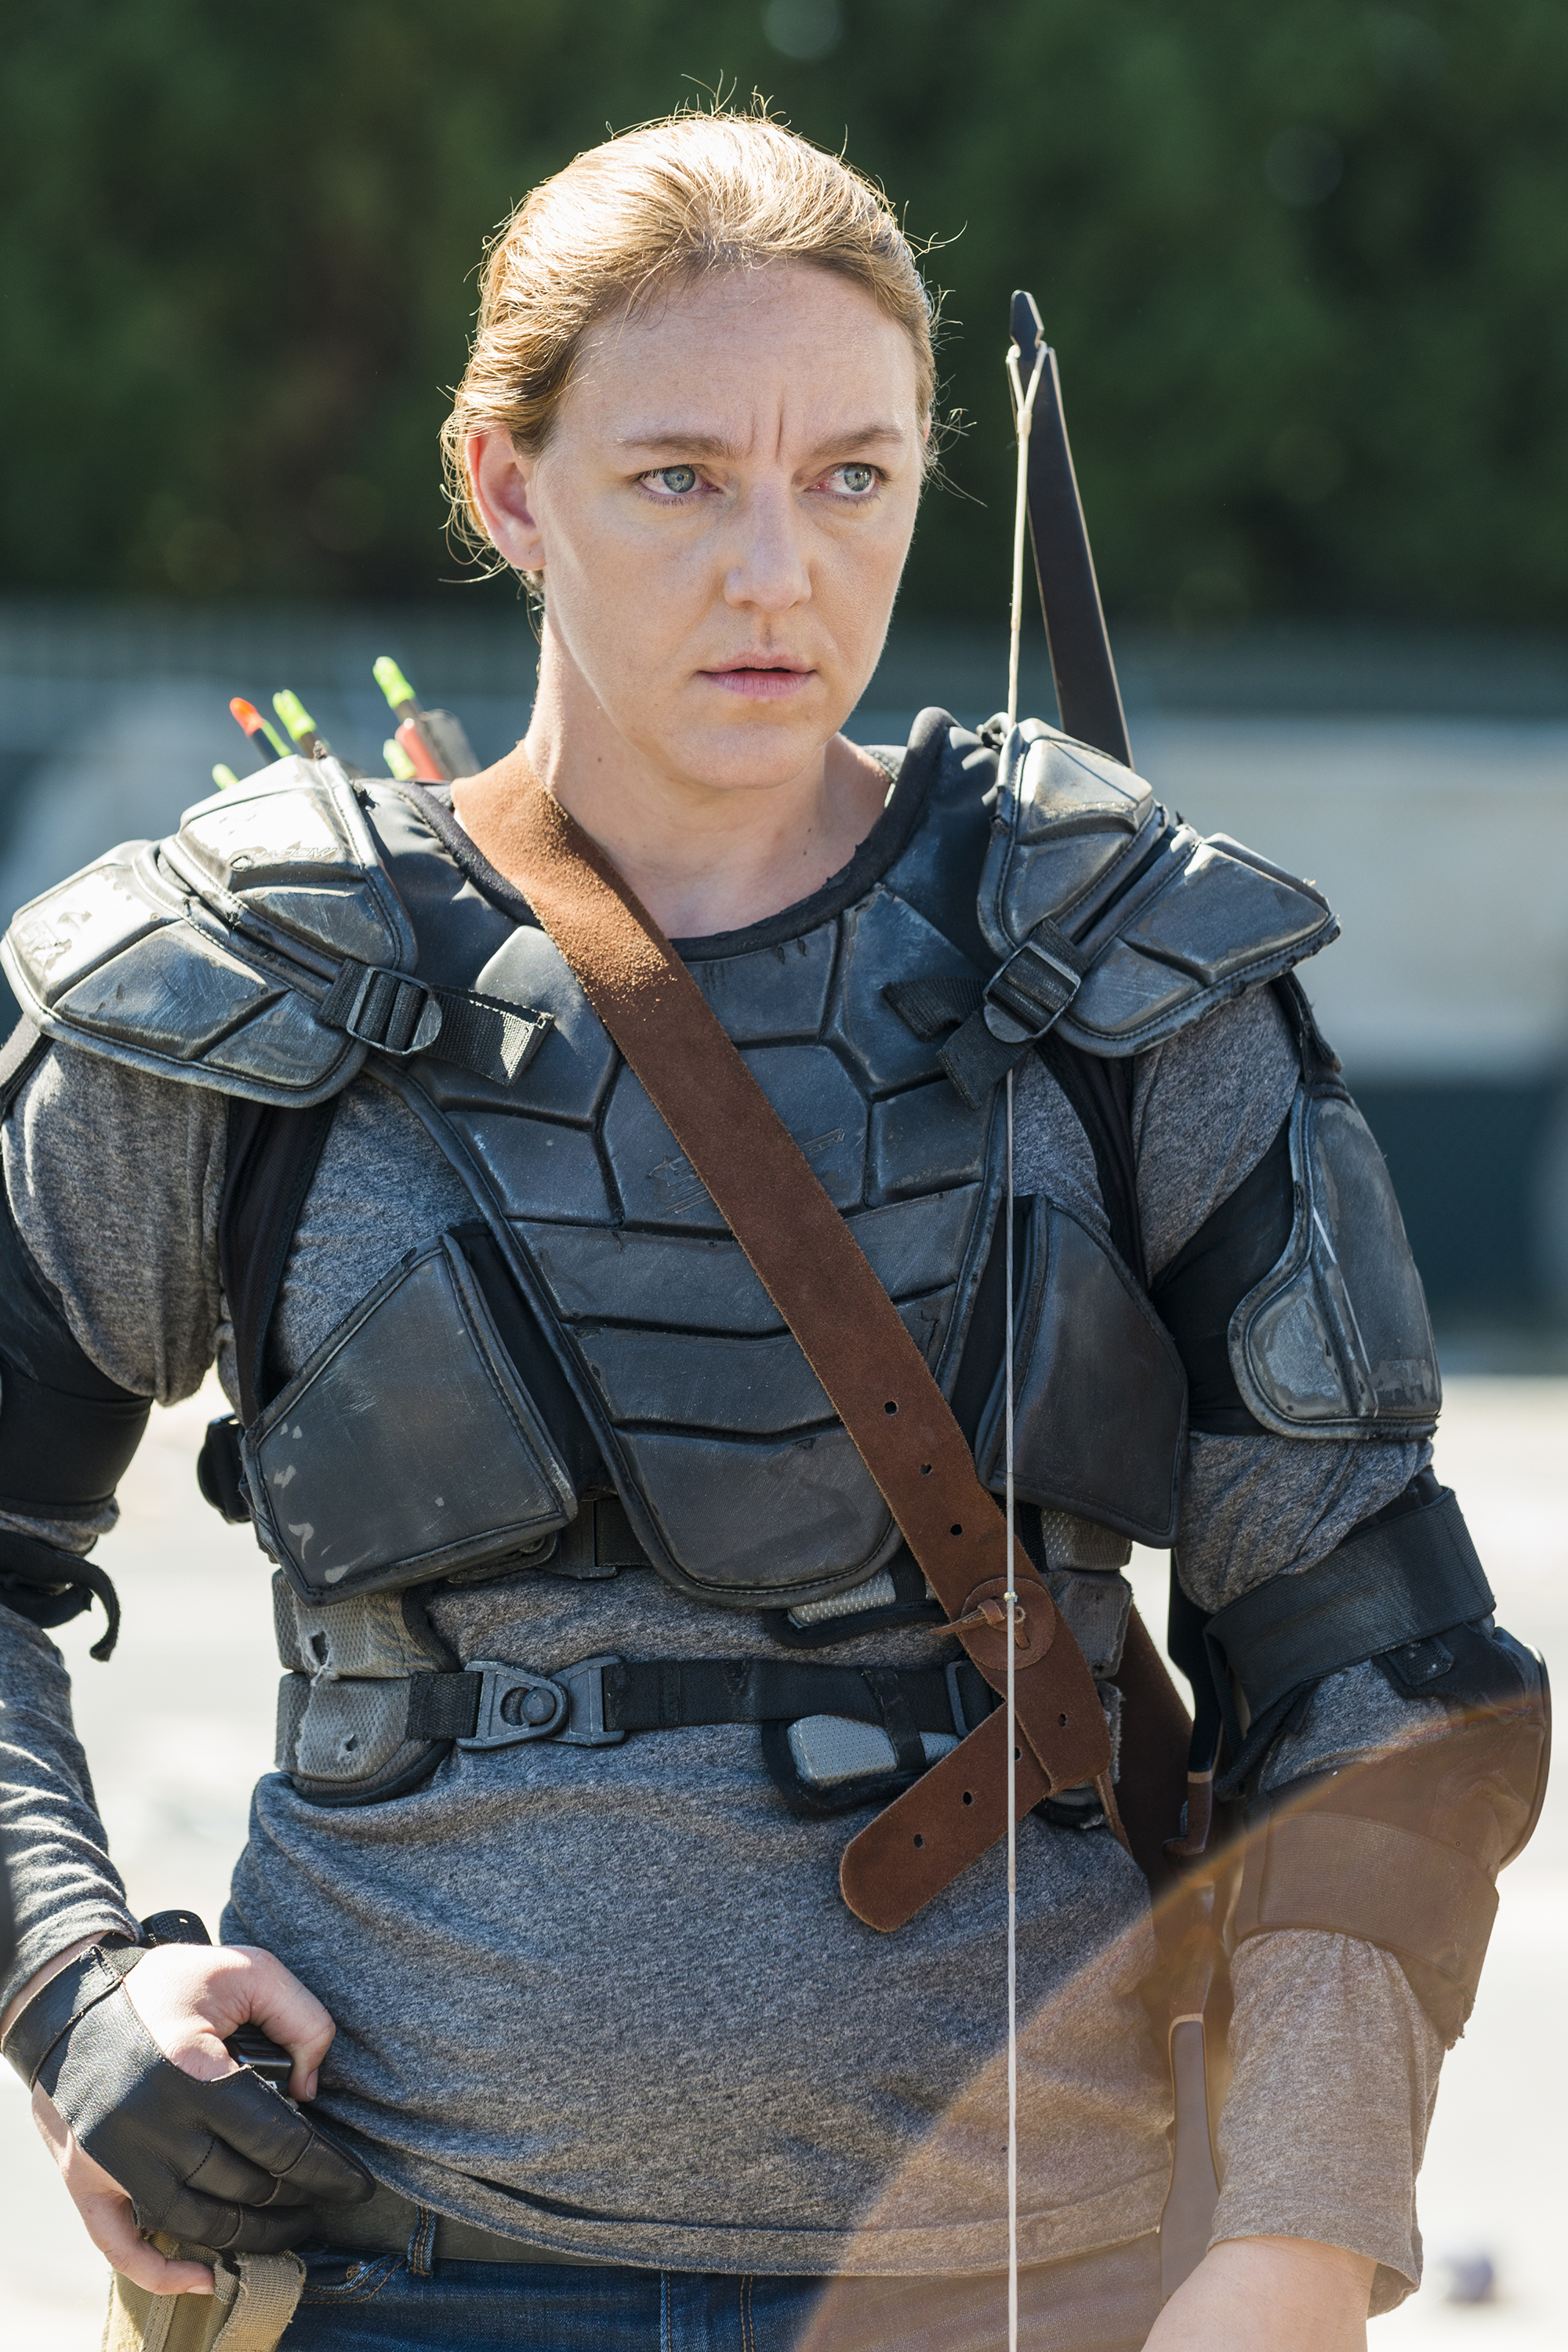 Kerry Cahill as Dianne - The Walking Dead, Season 7, Episode 13